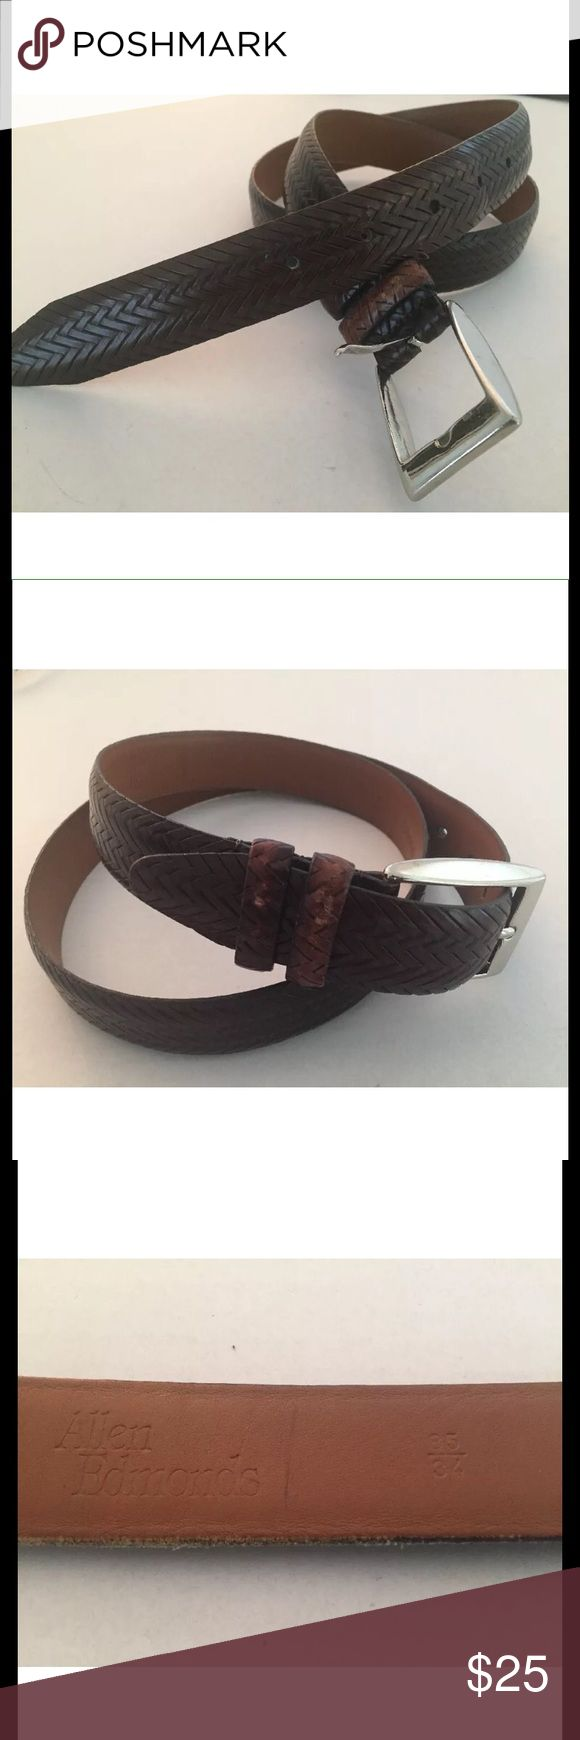 ALLEN EDMONS Sz 34 Italian Calfskin Woven Belt Men's ALLEN EDMOND'S Woven Leather Belt  Made in the U.S  Size: 34  Color: Brown  Material: Leather belt w/ silver tone brass hardware  Condition: Some notice wear but over all in very good condition Allen Edmonds Accessories Belts